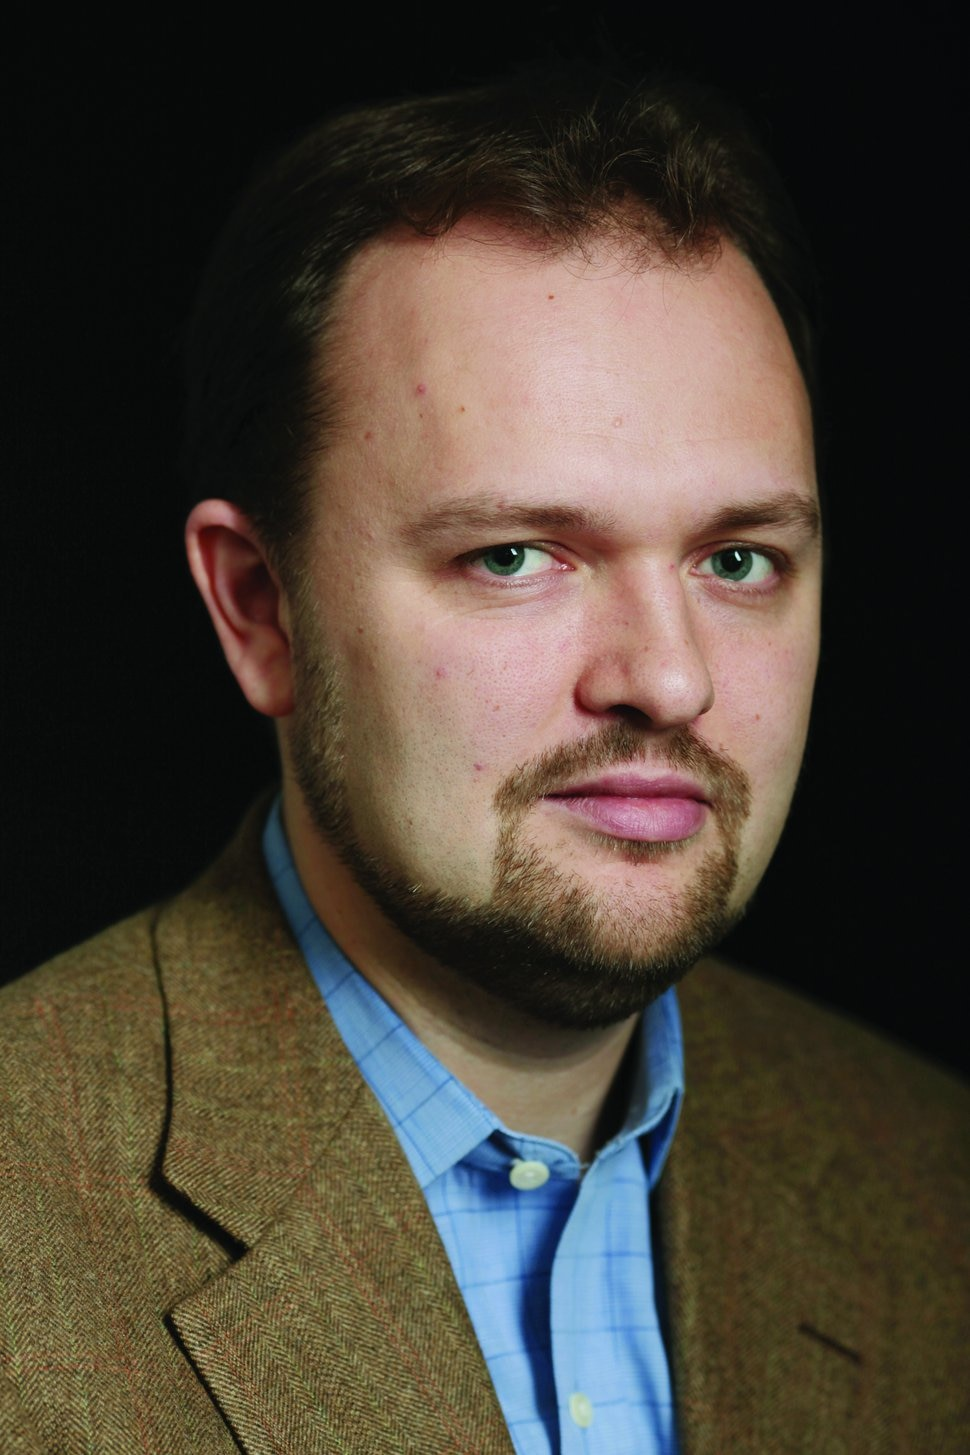 (Josh Haner | The New York Times) Ross Douthat